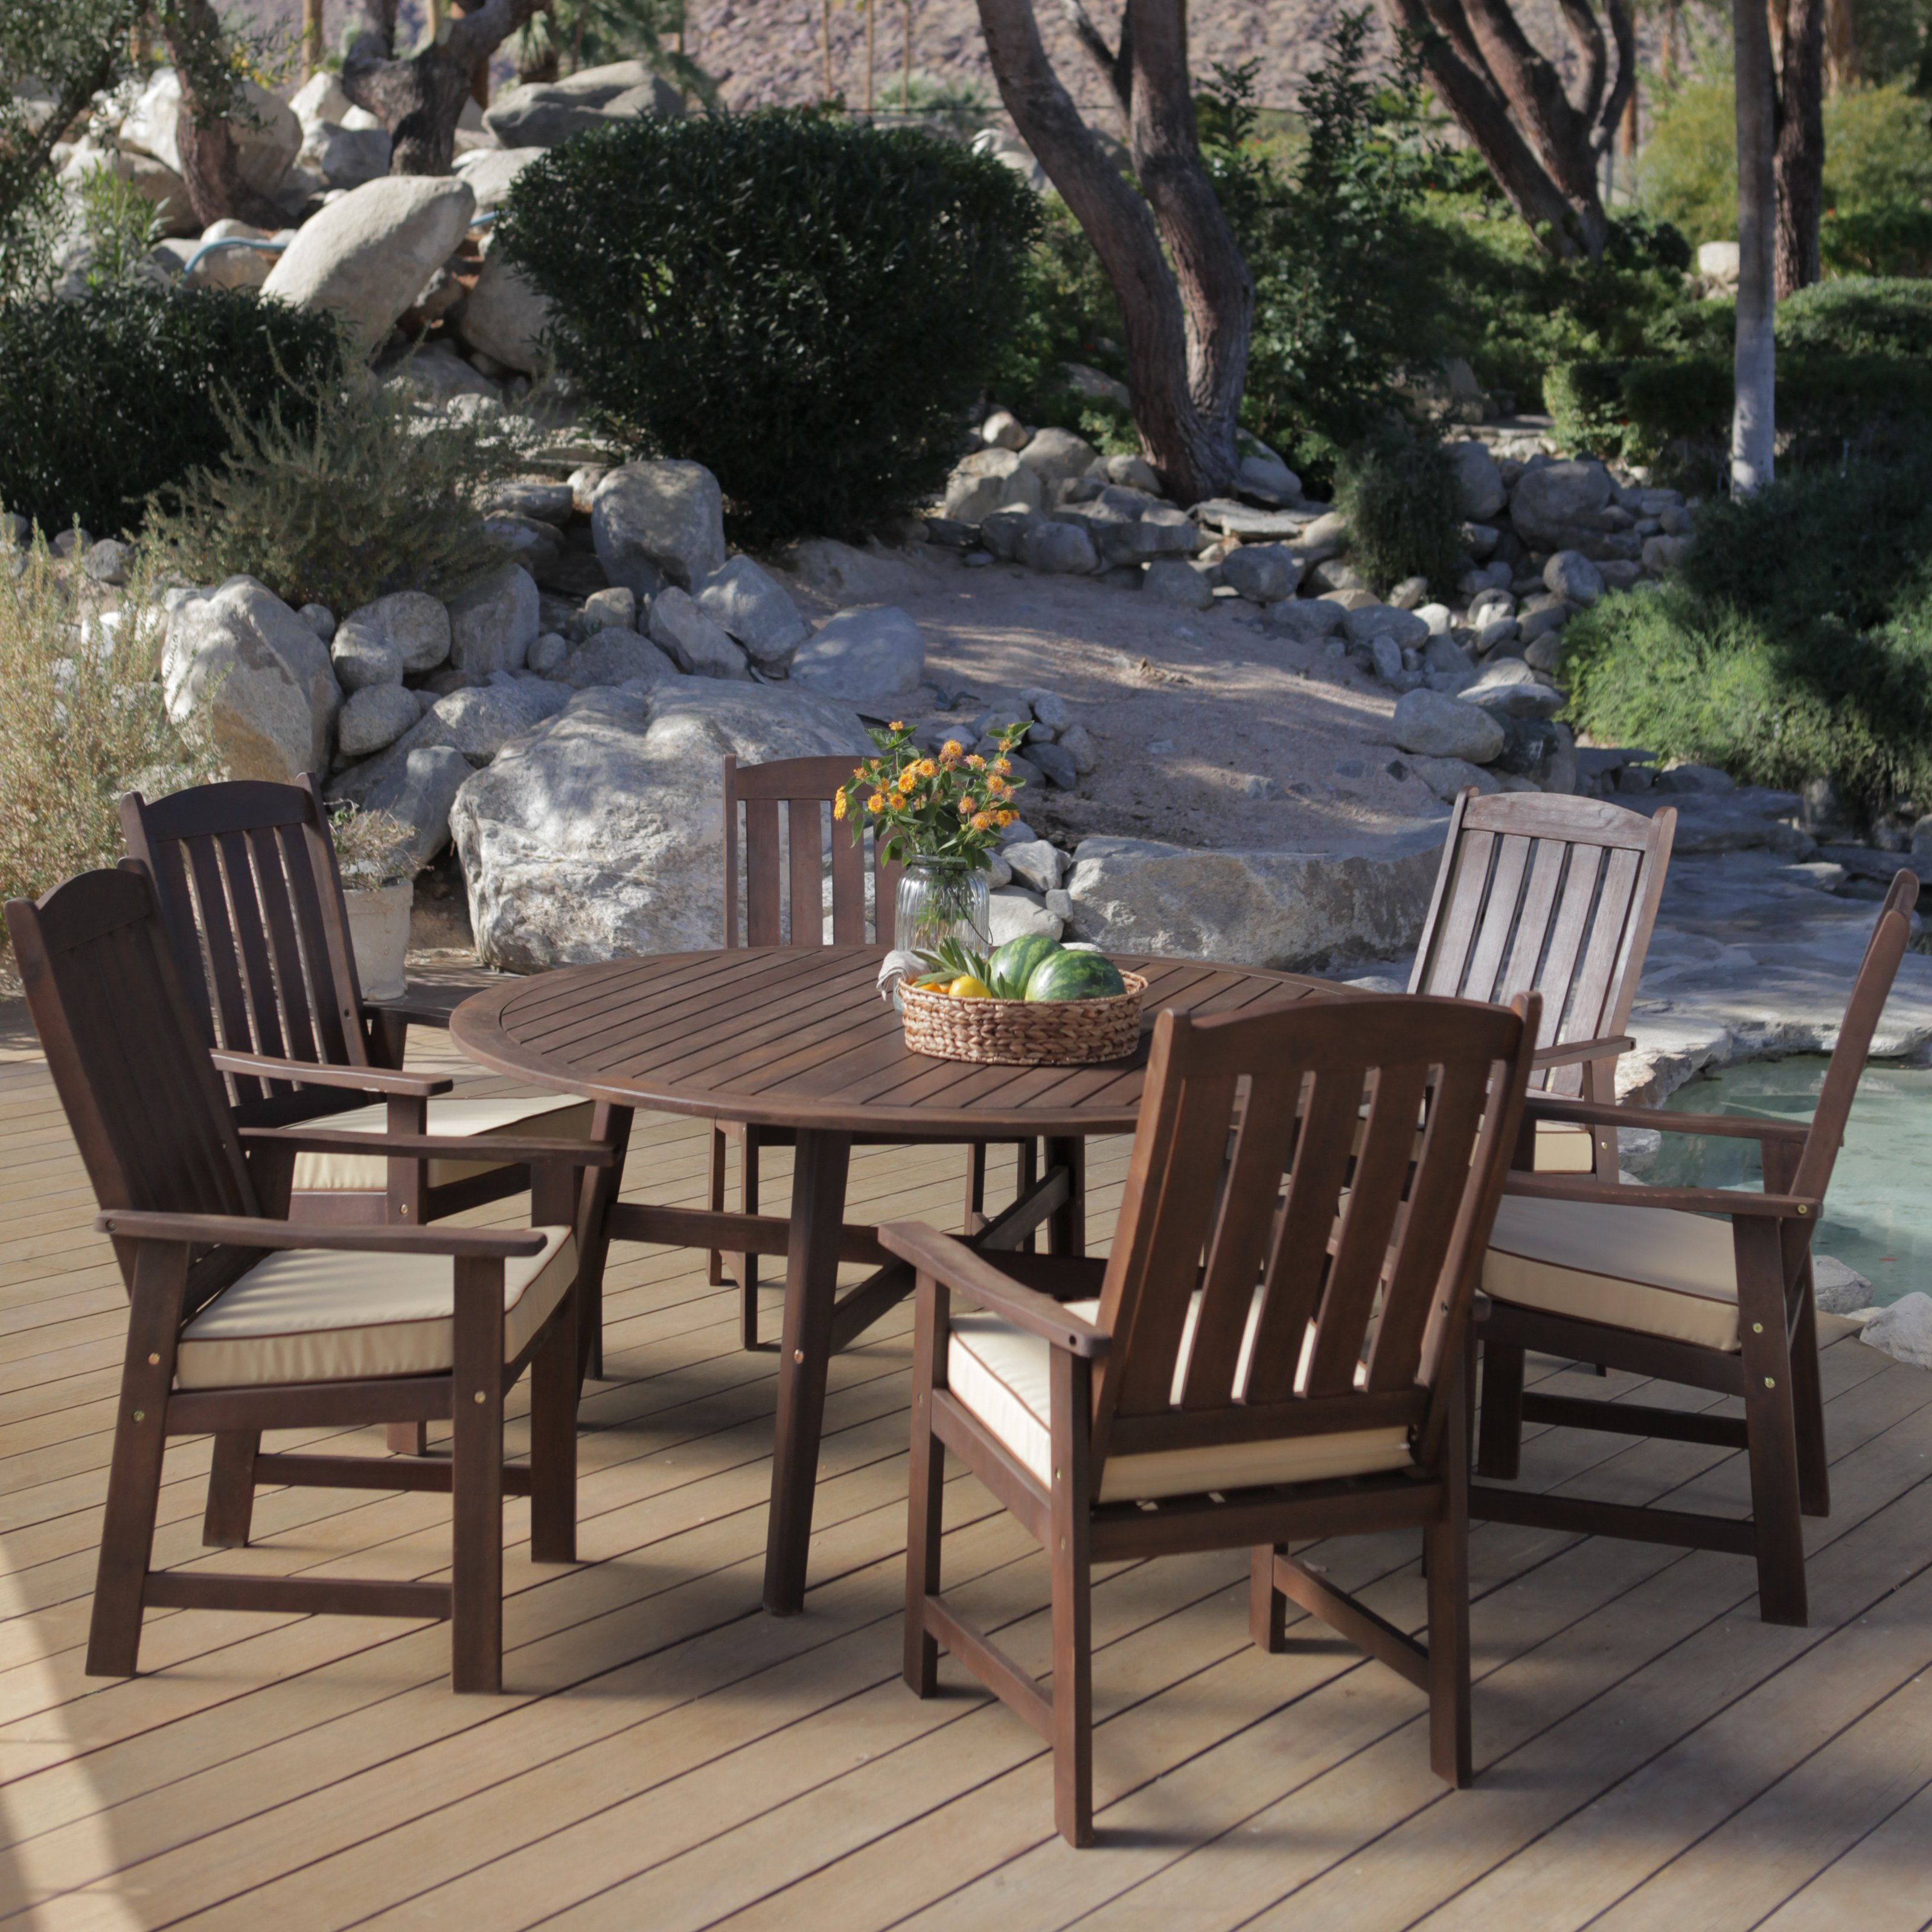 patio dining sets seats 6 photo - 2